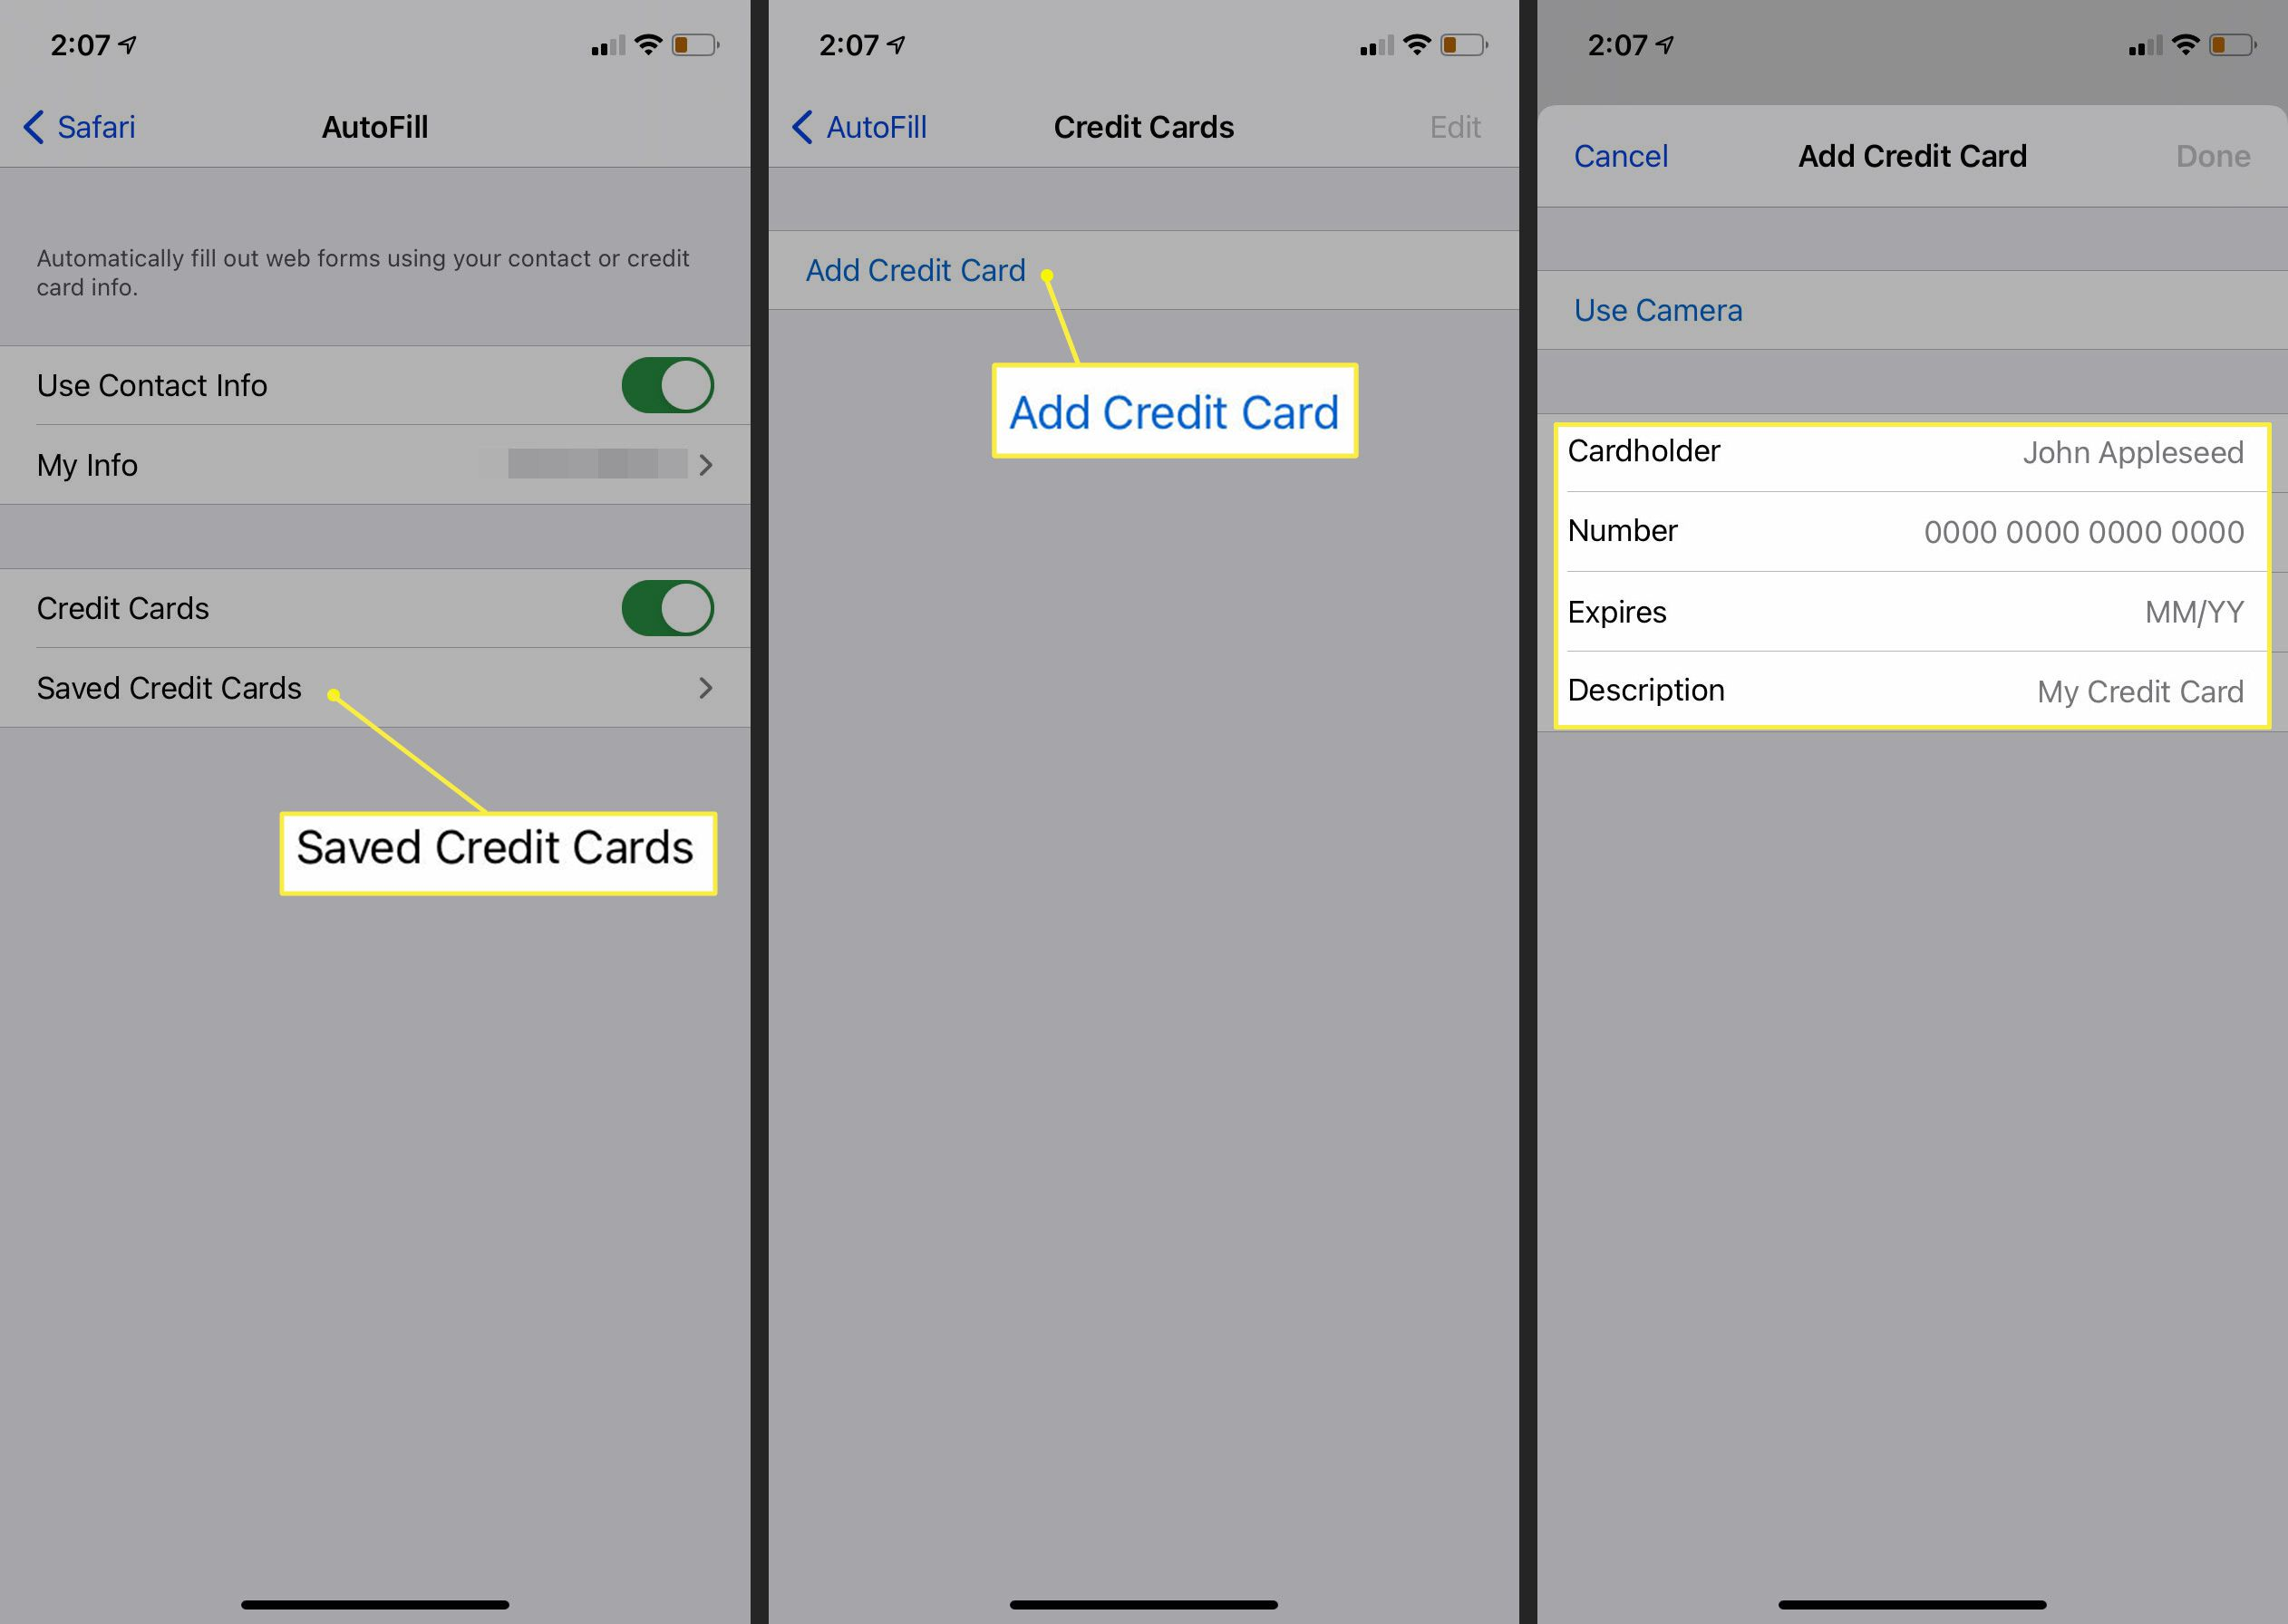 Saved Credit Cards > Add Credit Card